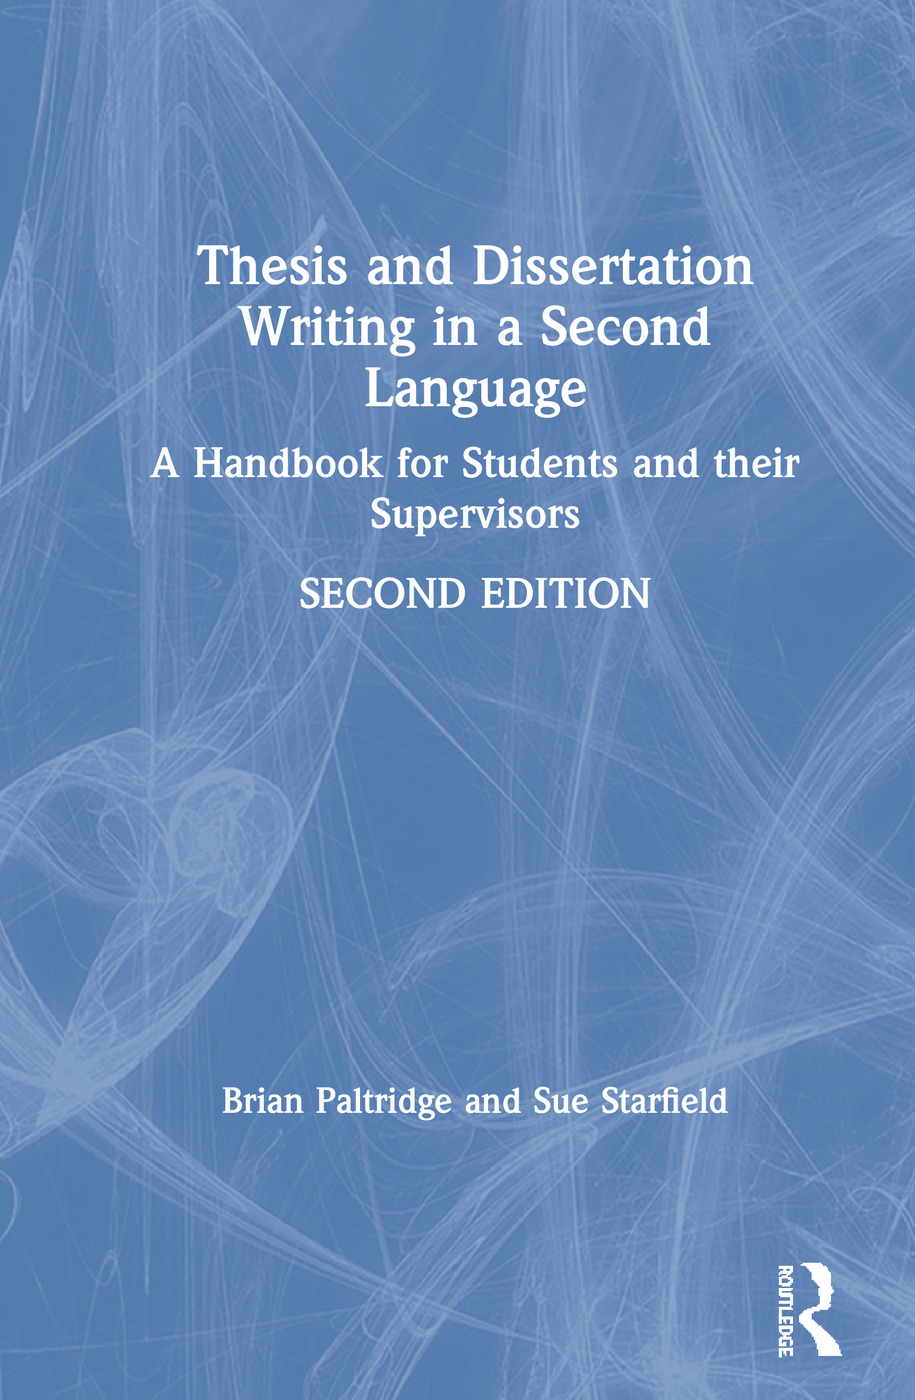 Online dissertation and thesis handbook for supervisors